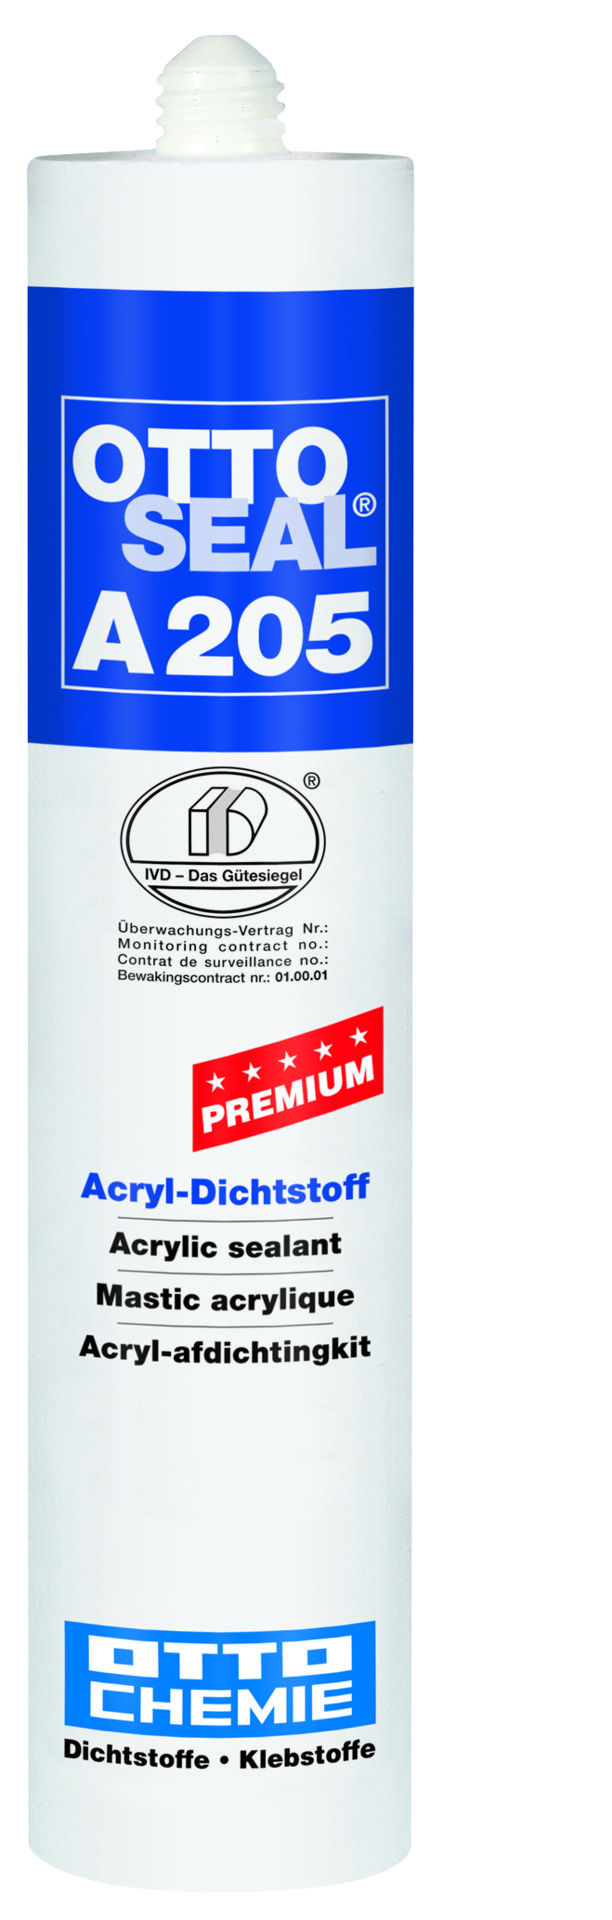 ottoseal® acryl-dichtstoff a205, 310 ml – staubsauger store